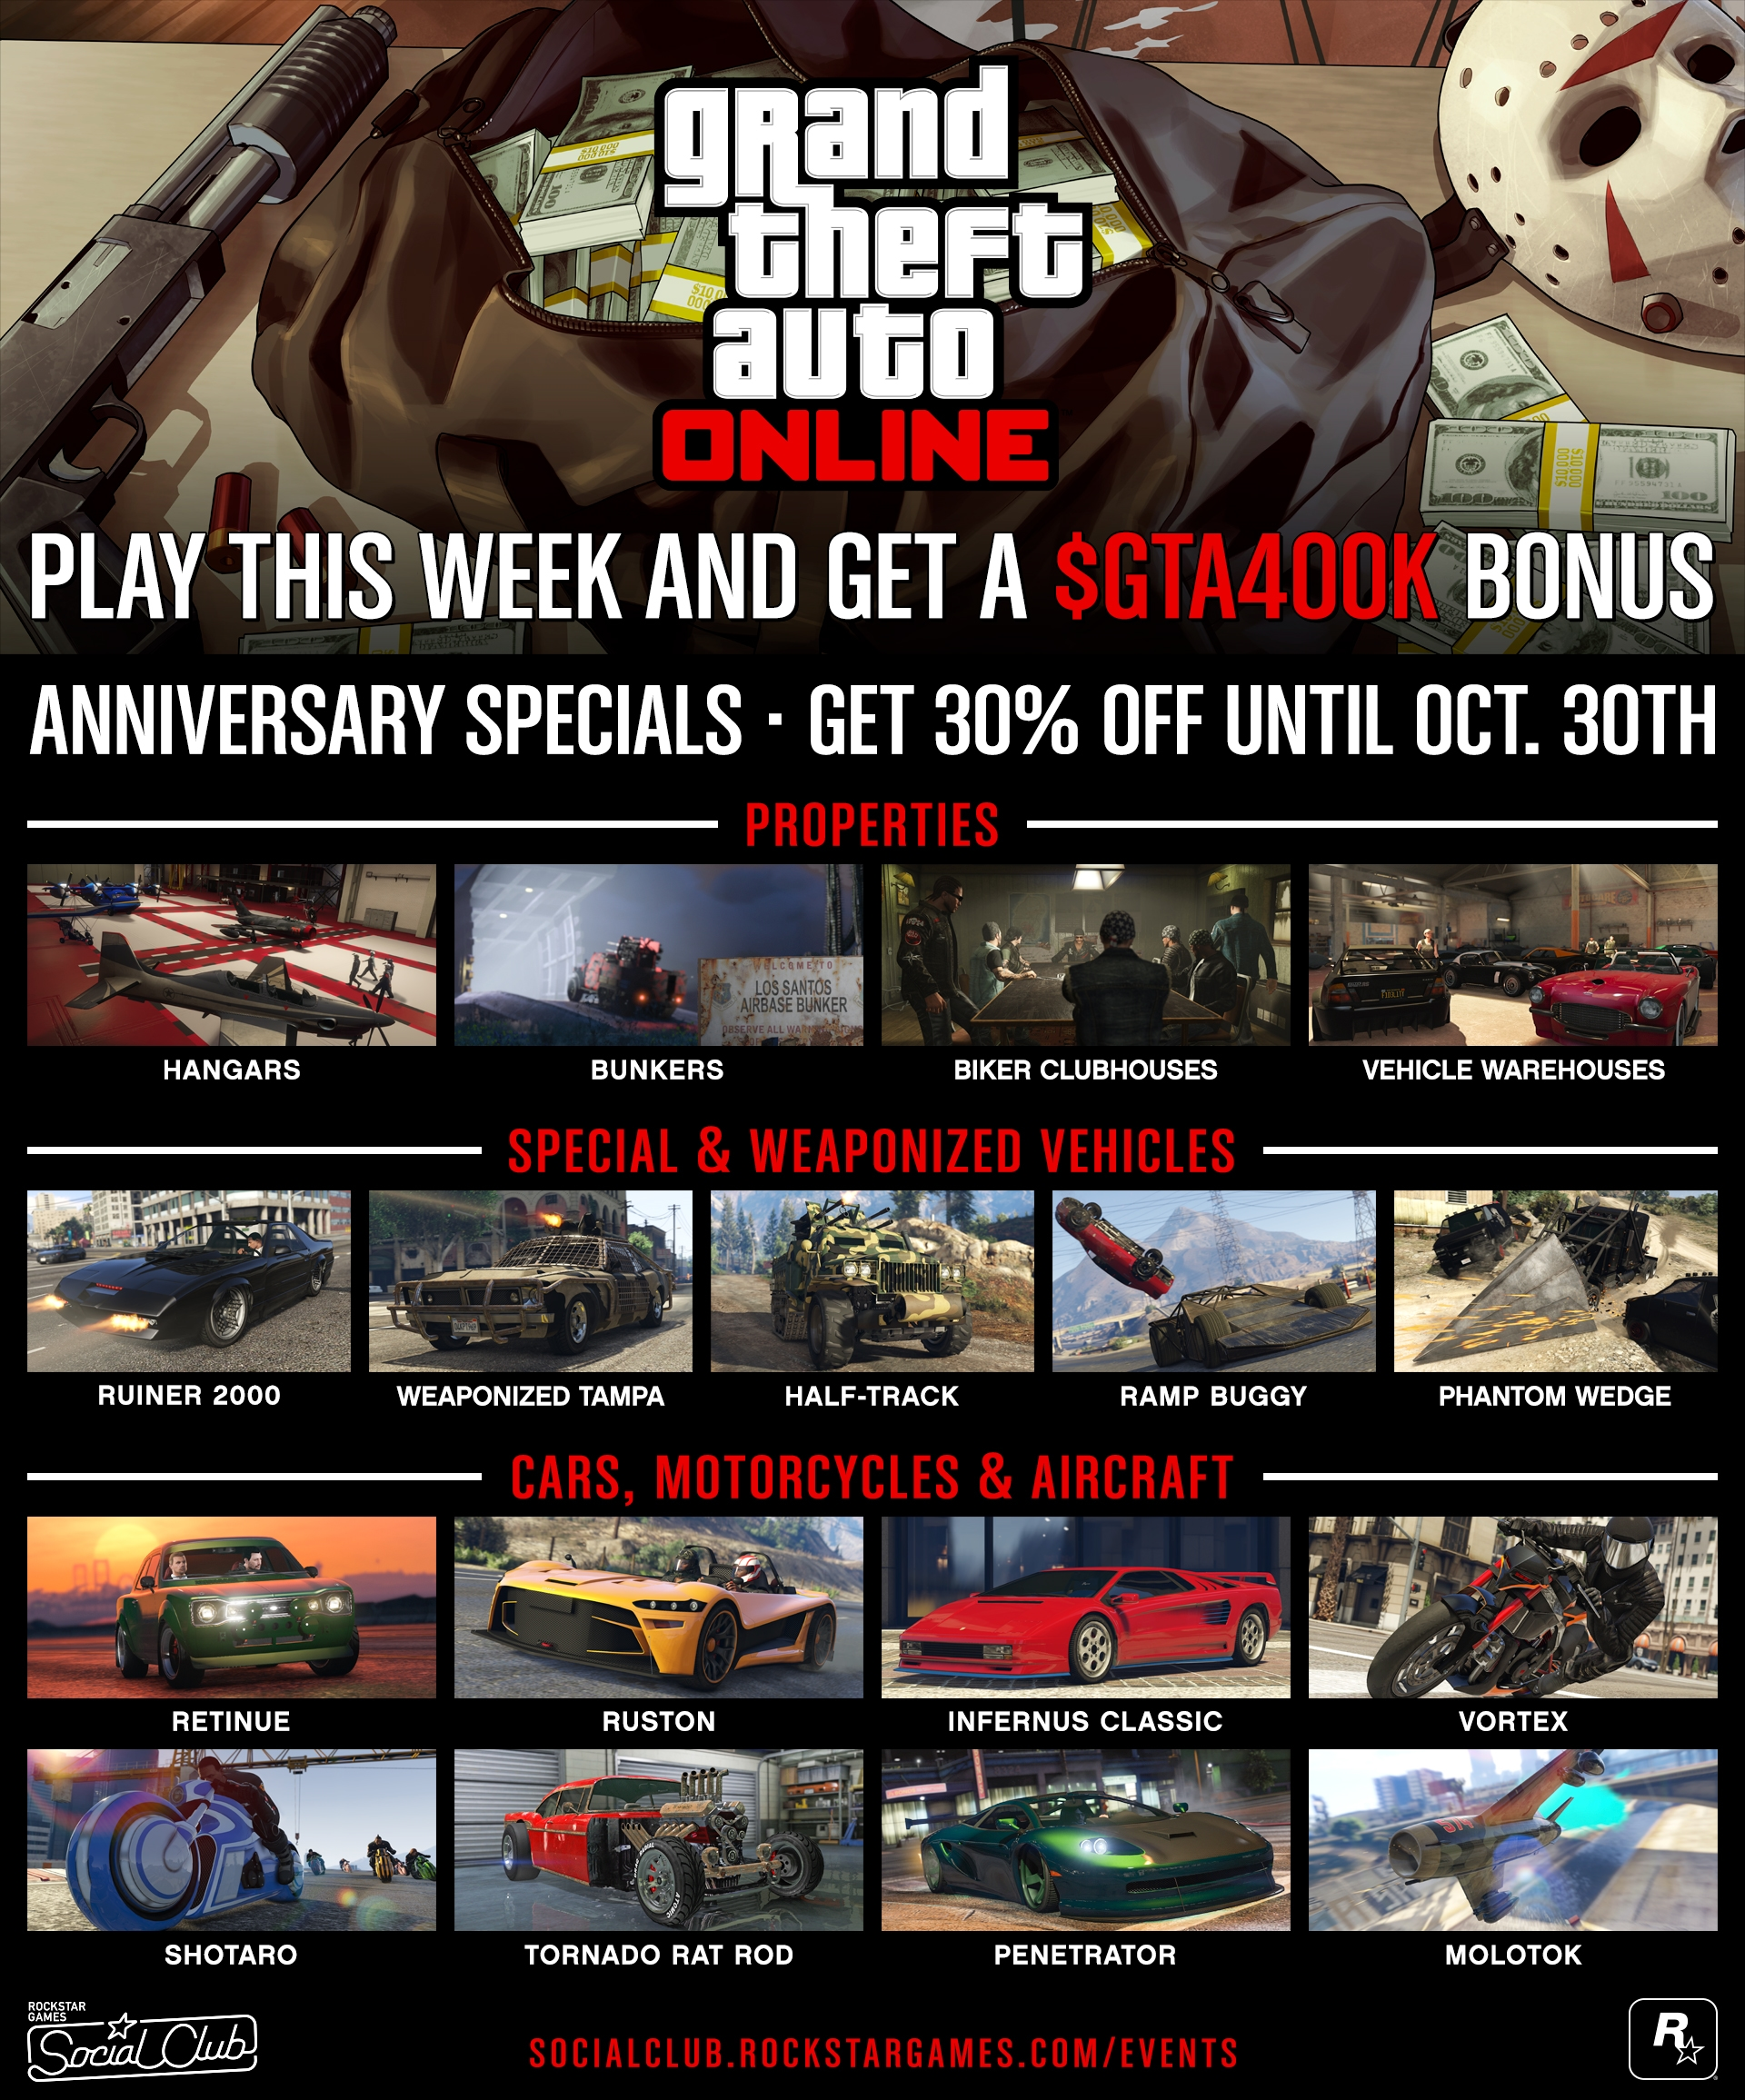 The full list of GTA bonuses available for a limited period